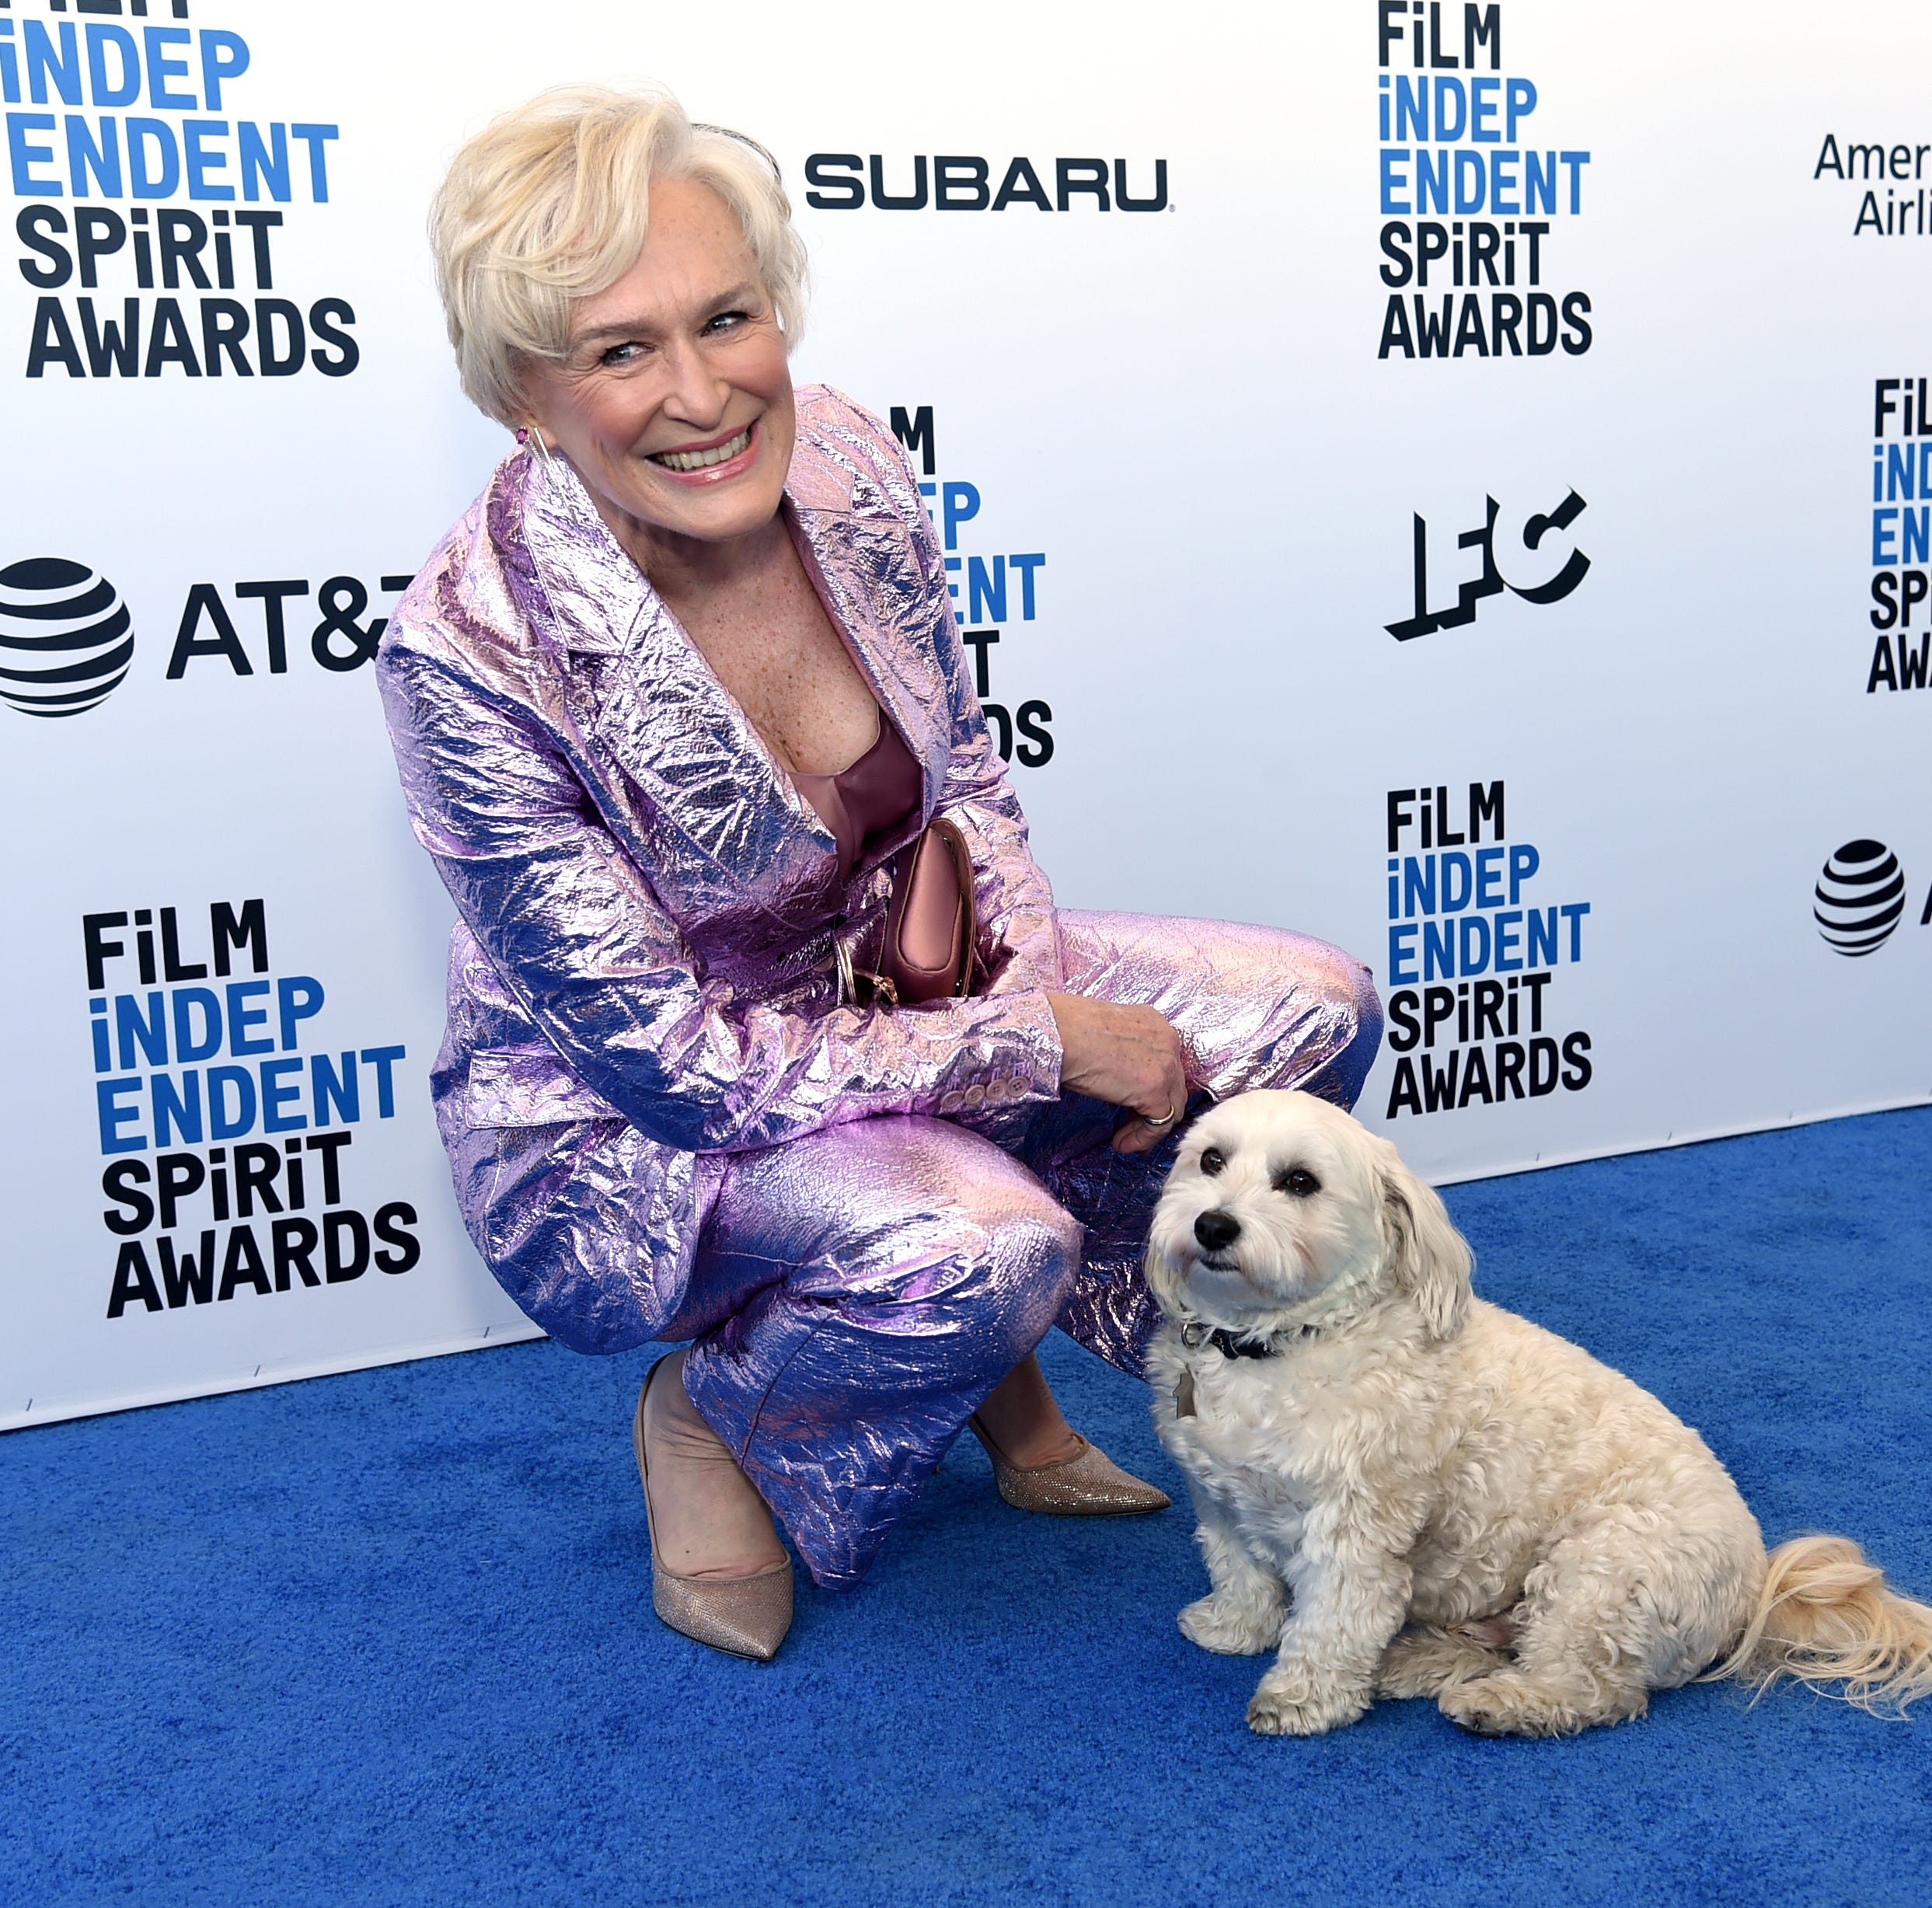 Glenn Close arrives at the 34th Film Independent Spirit Awards with her pup, Pip.